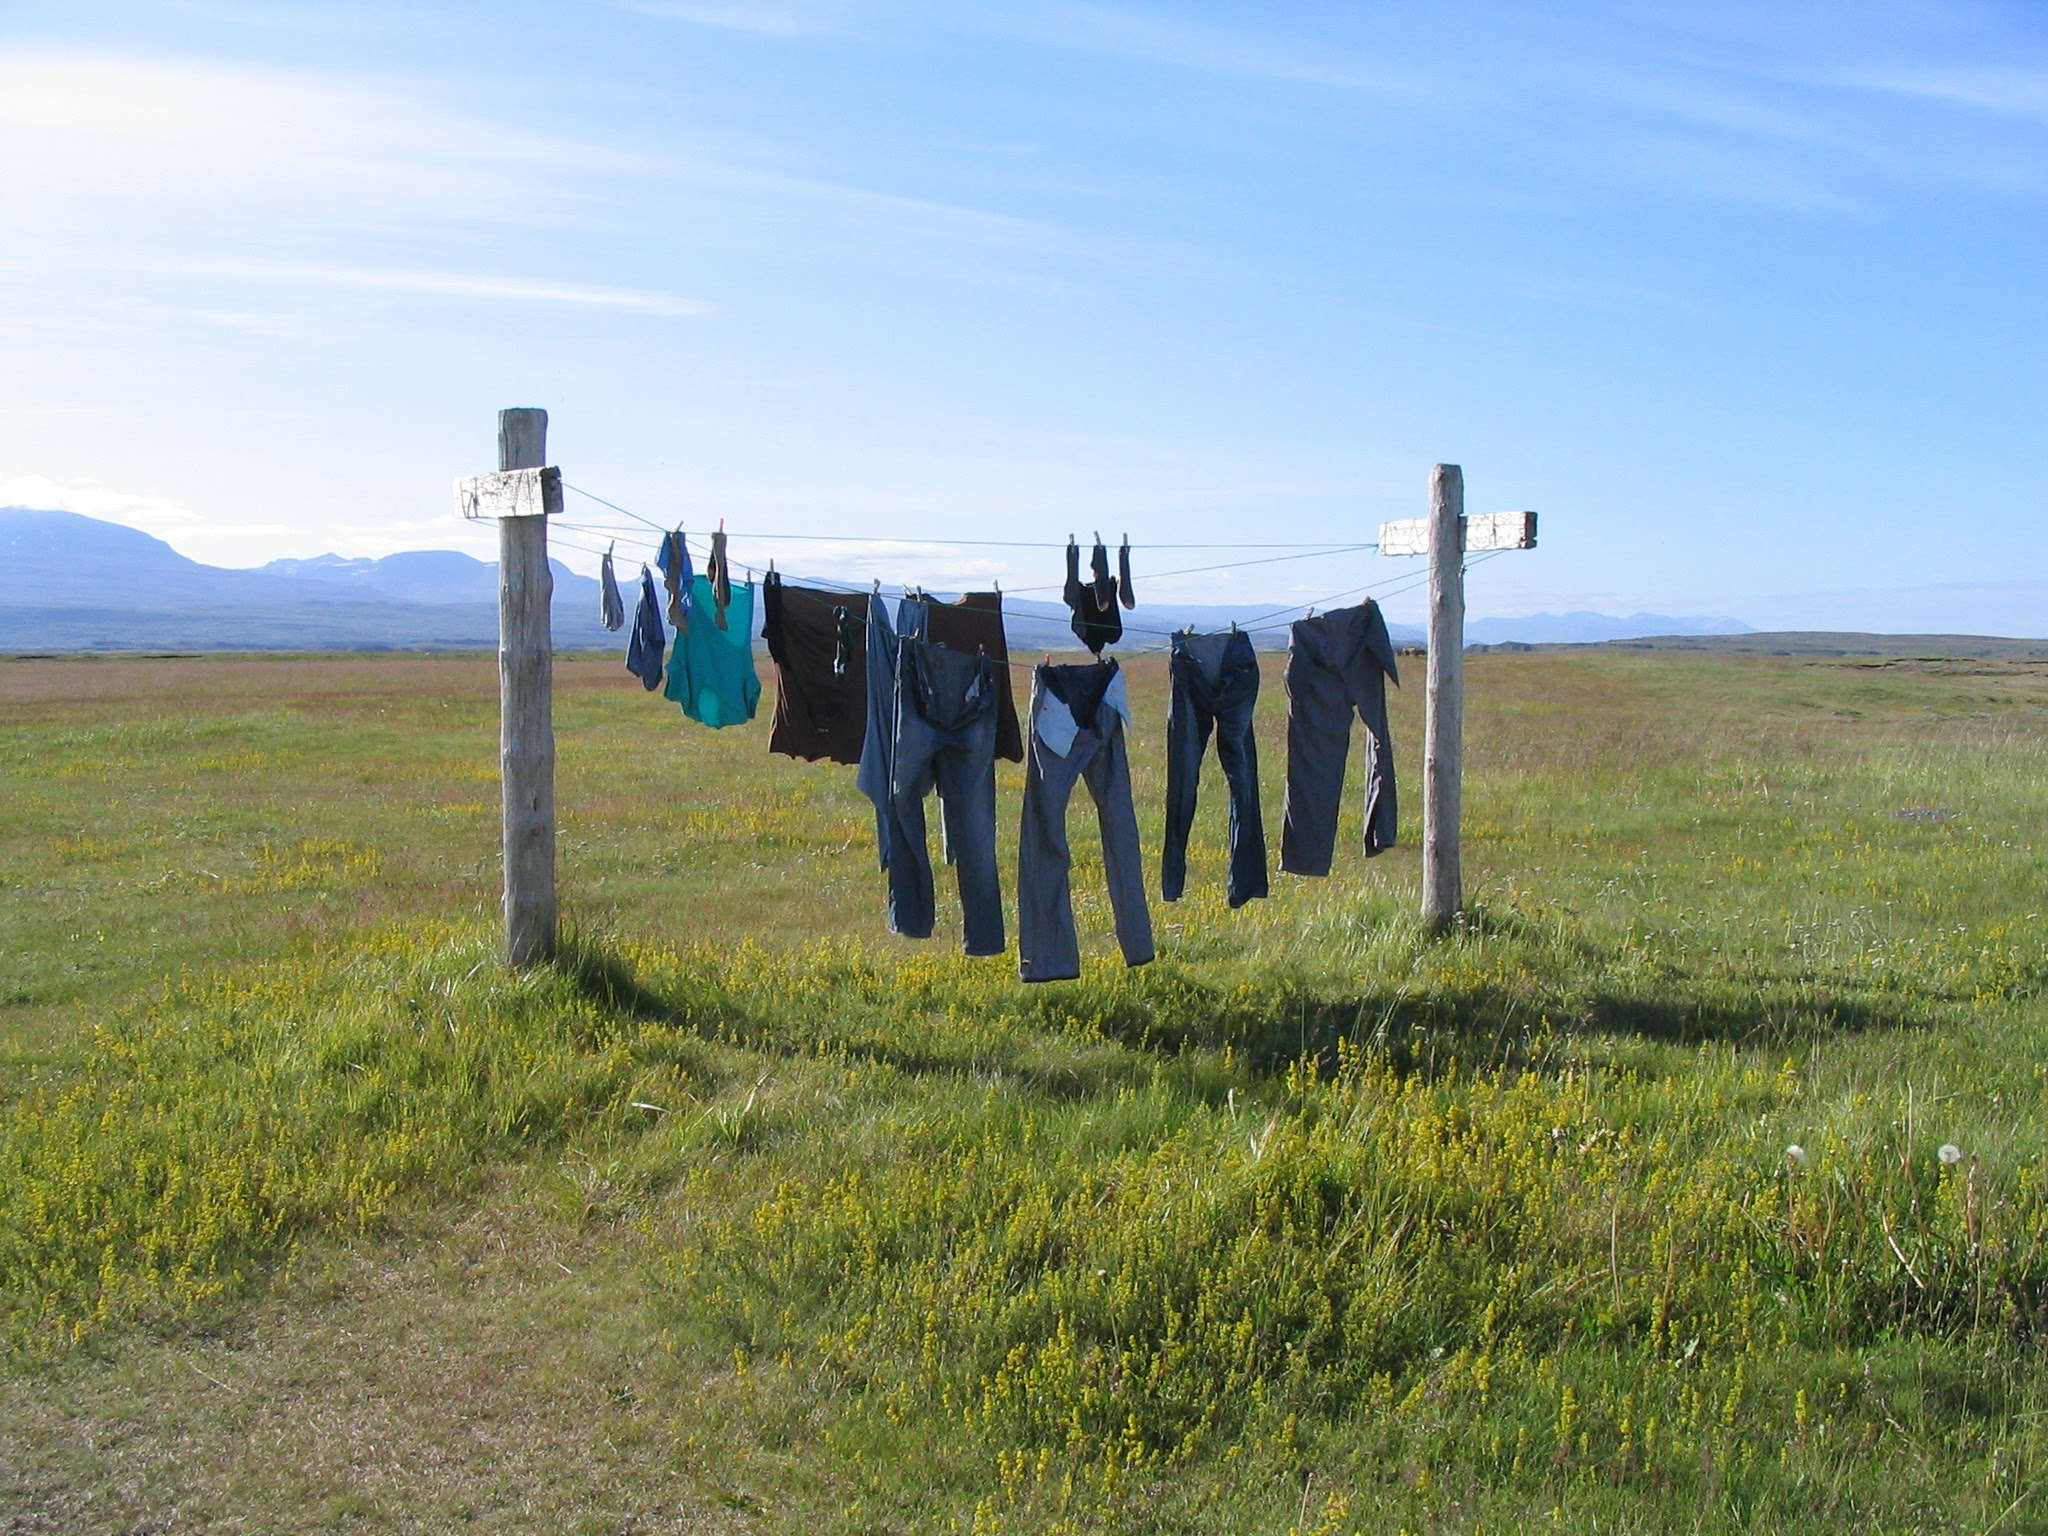 http://upload.wikimedia.org/wikipedia/commons/b/b8/Washing_Line%2C_Iceland.jpg